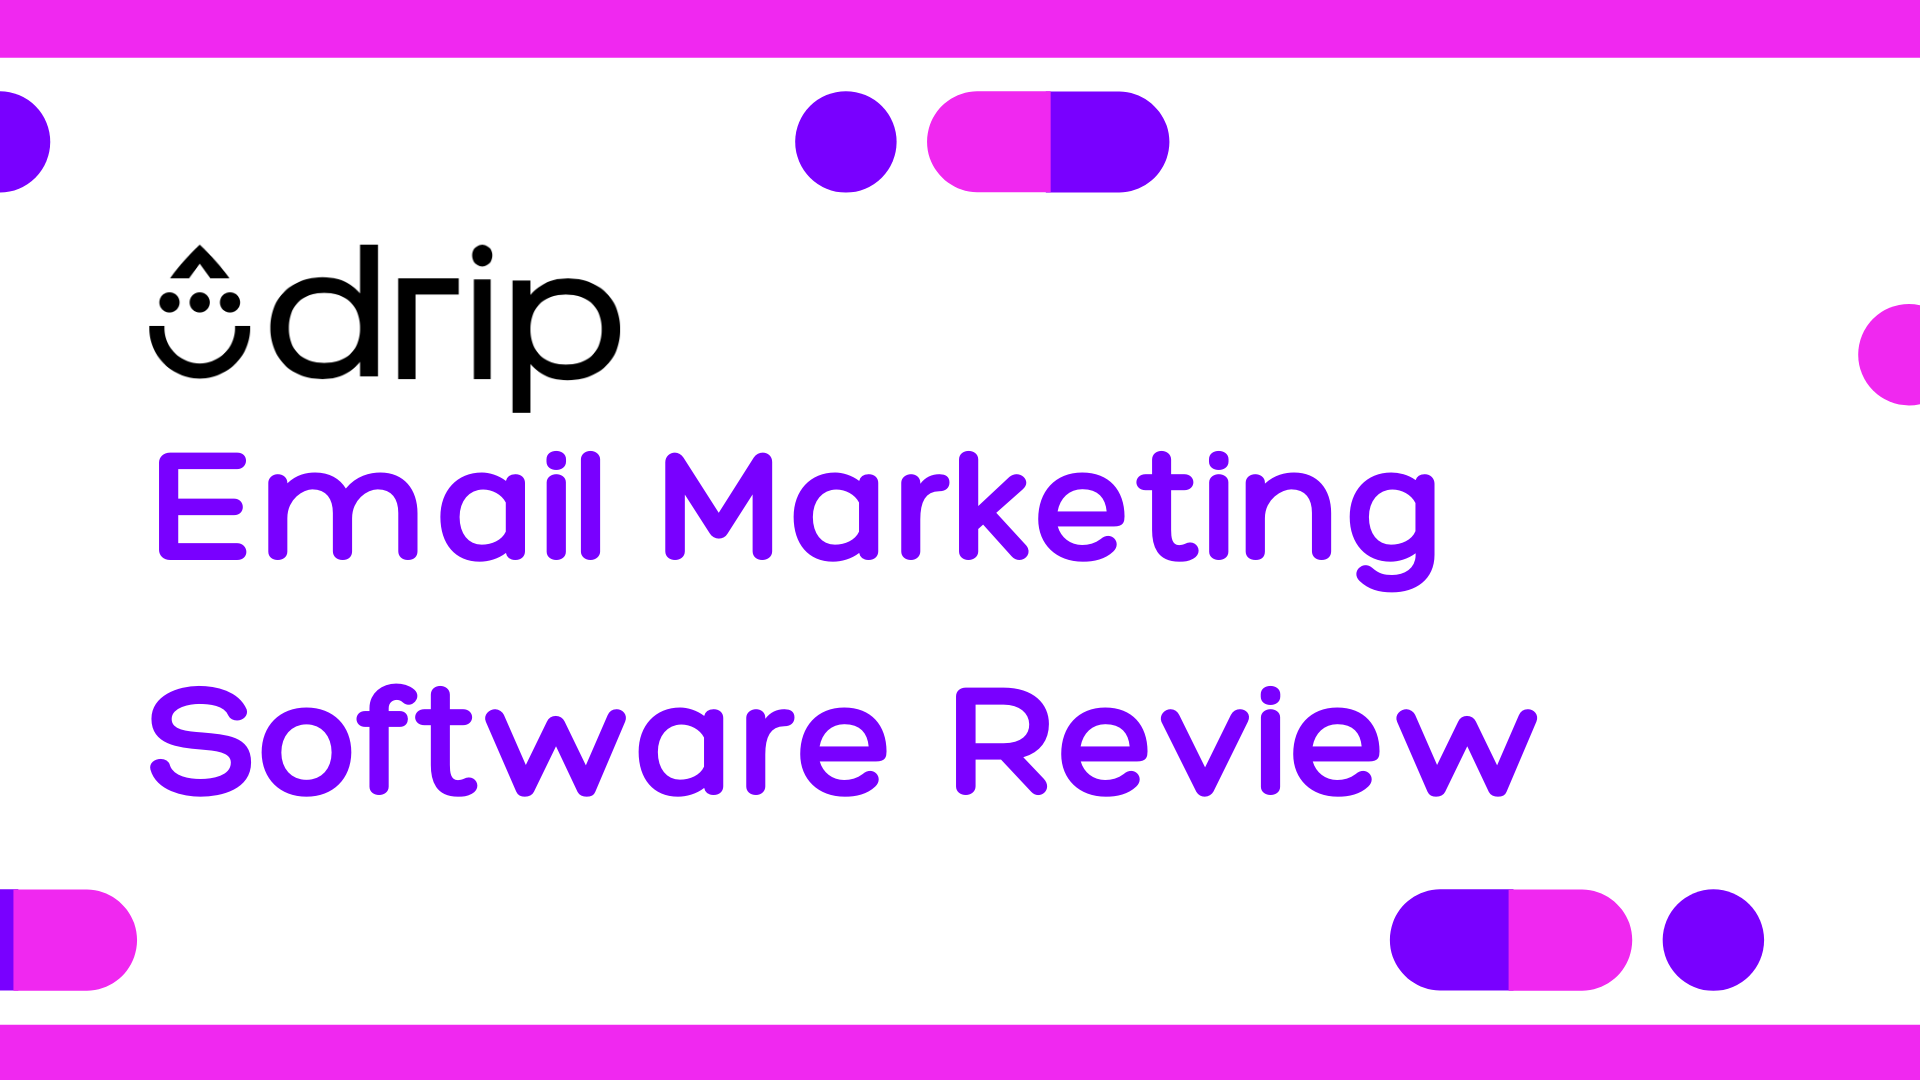 Drip Review Blog Post Featured Image